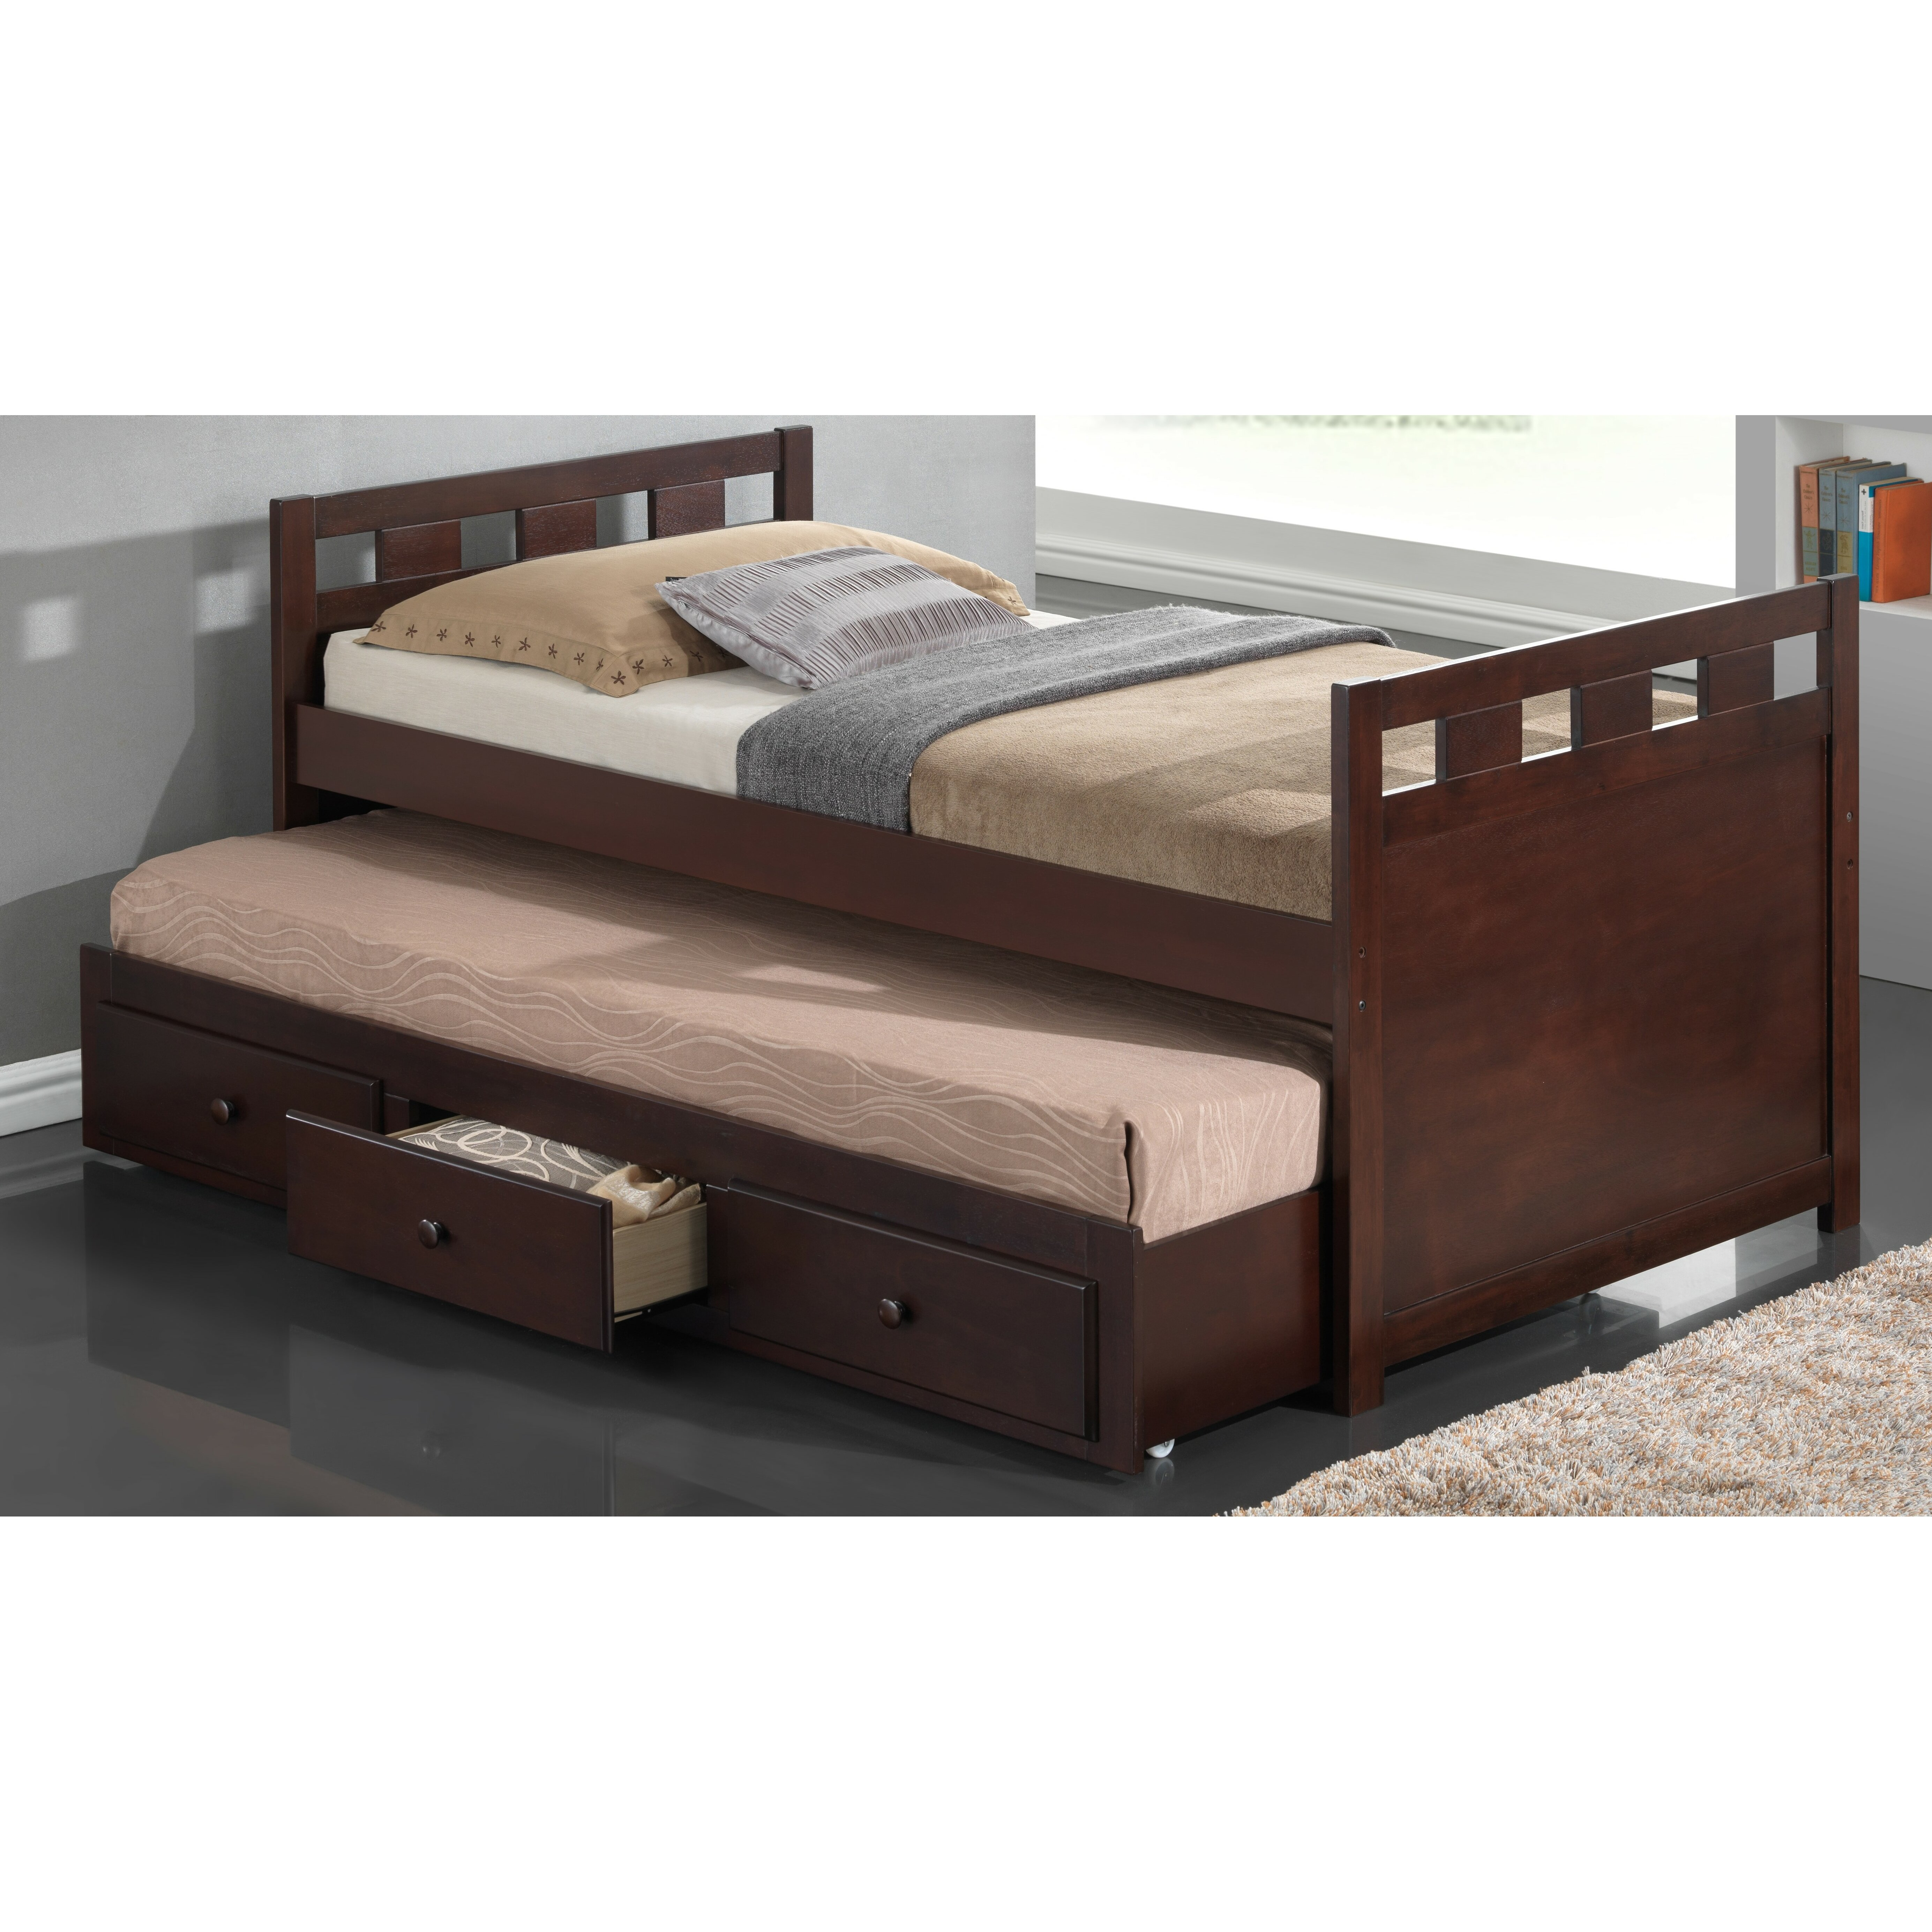 breckenridge twin captain bed with trundle and storage wayfair. Black Bedroom Furniture Sets. Home Design Ideas